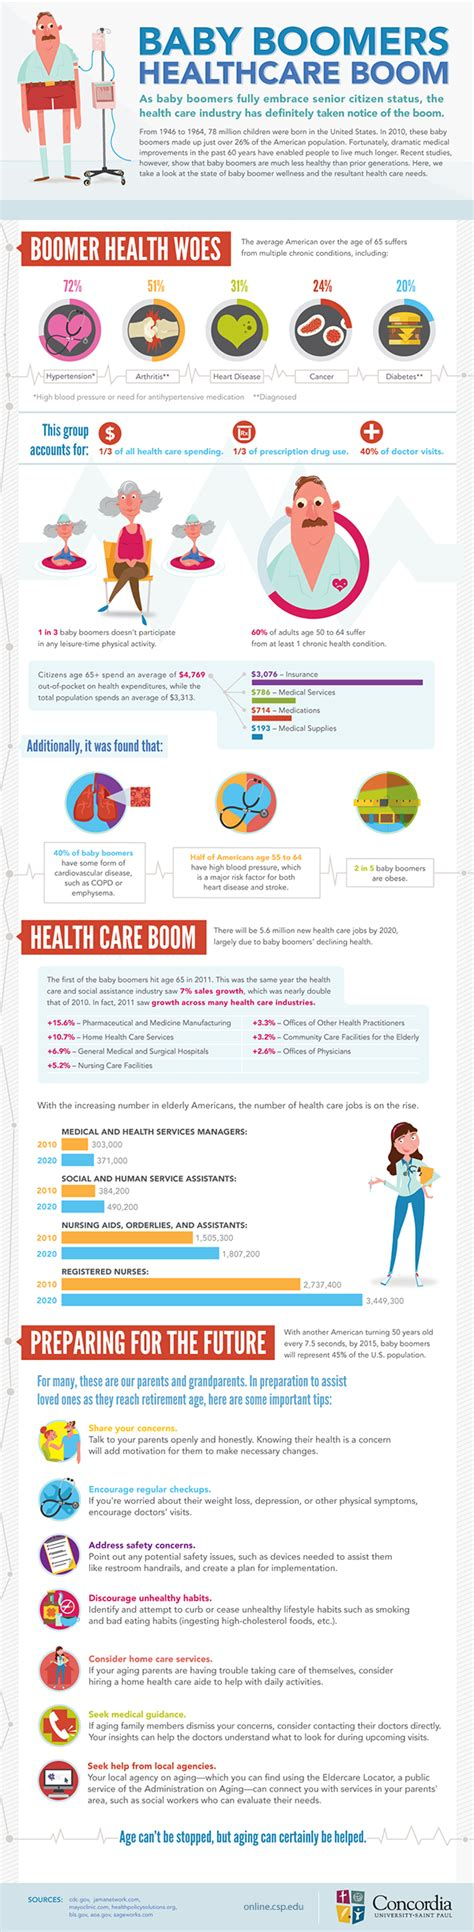 how baby boomers consume health care infographic